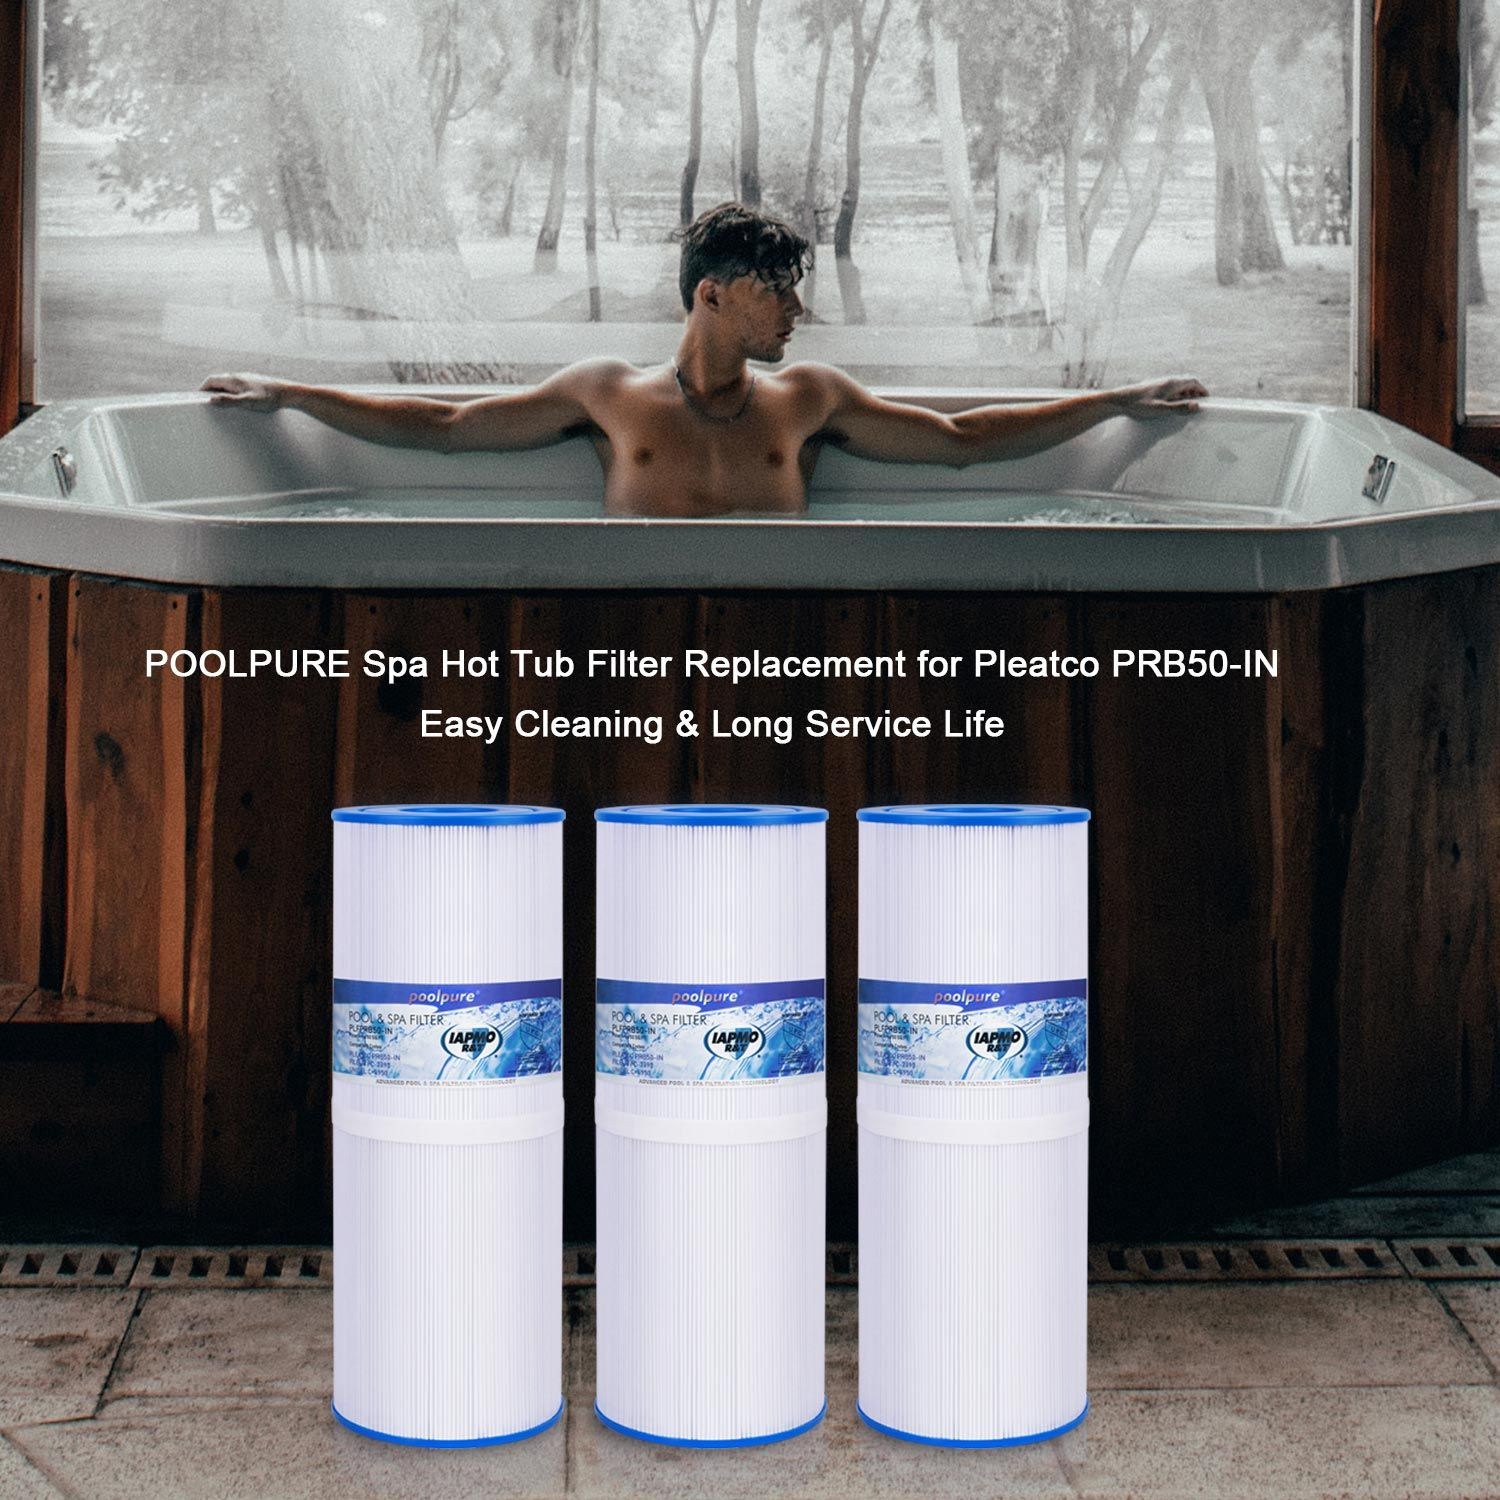 Poolpure spa filters can be used for 12 yearseasy